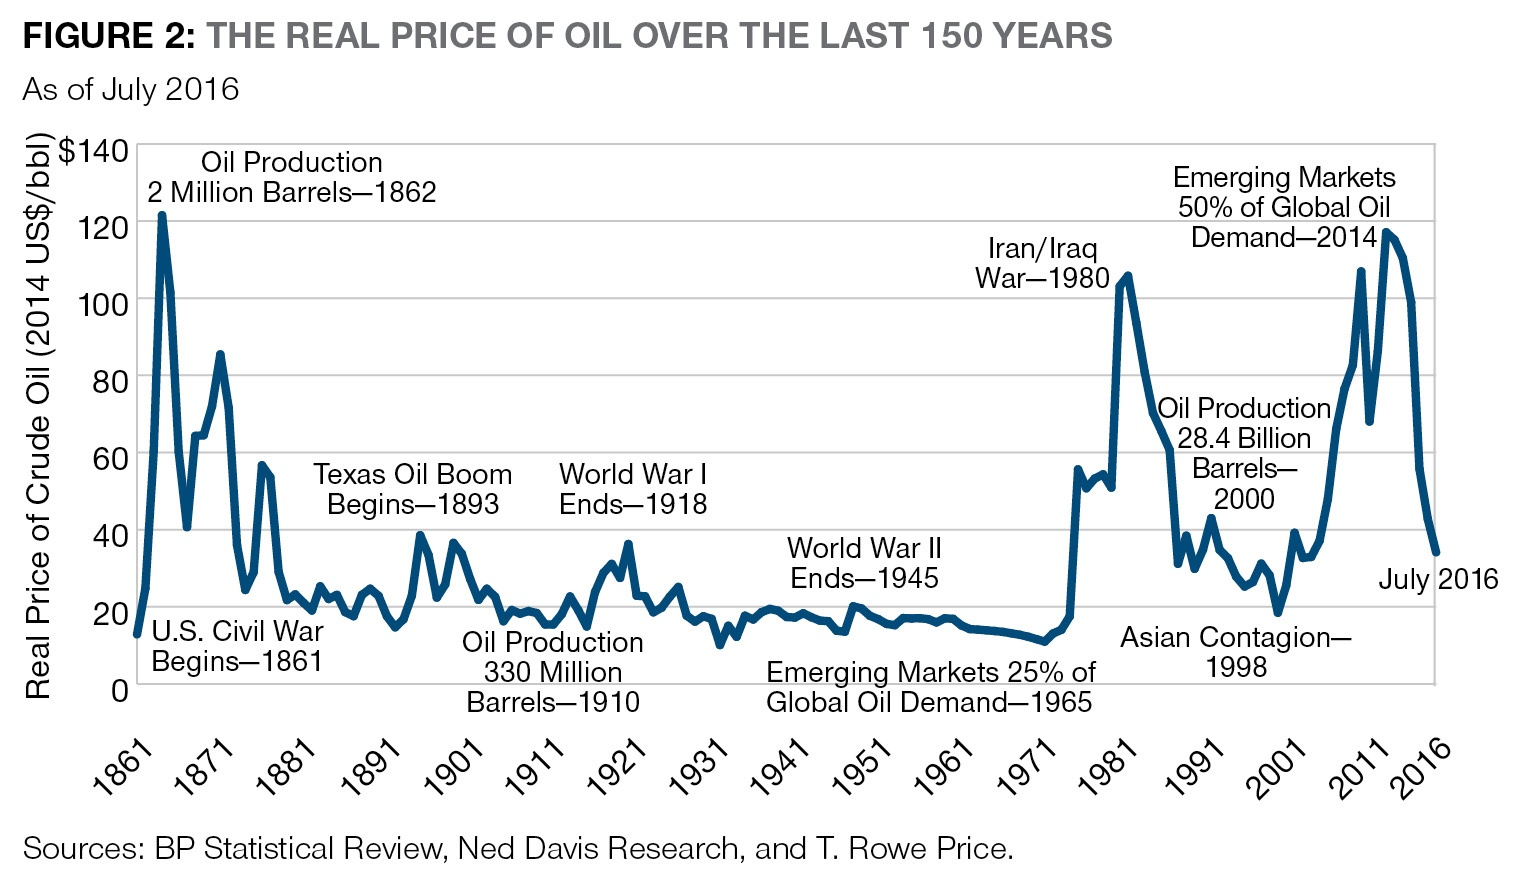 real-oil-pirce-over-150-years